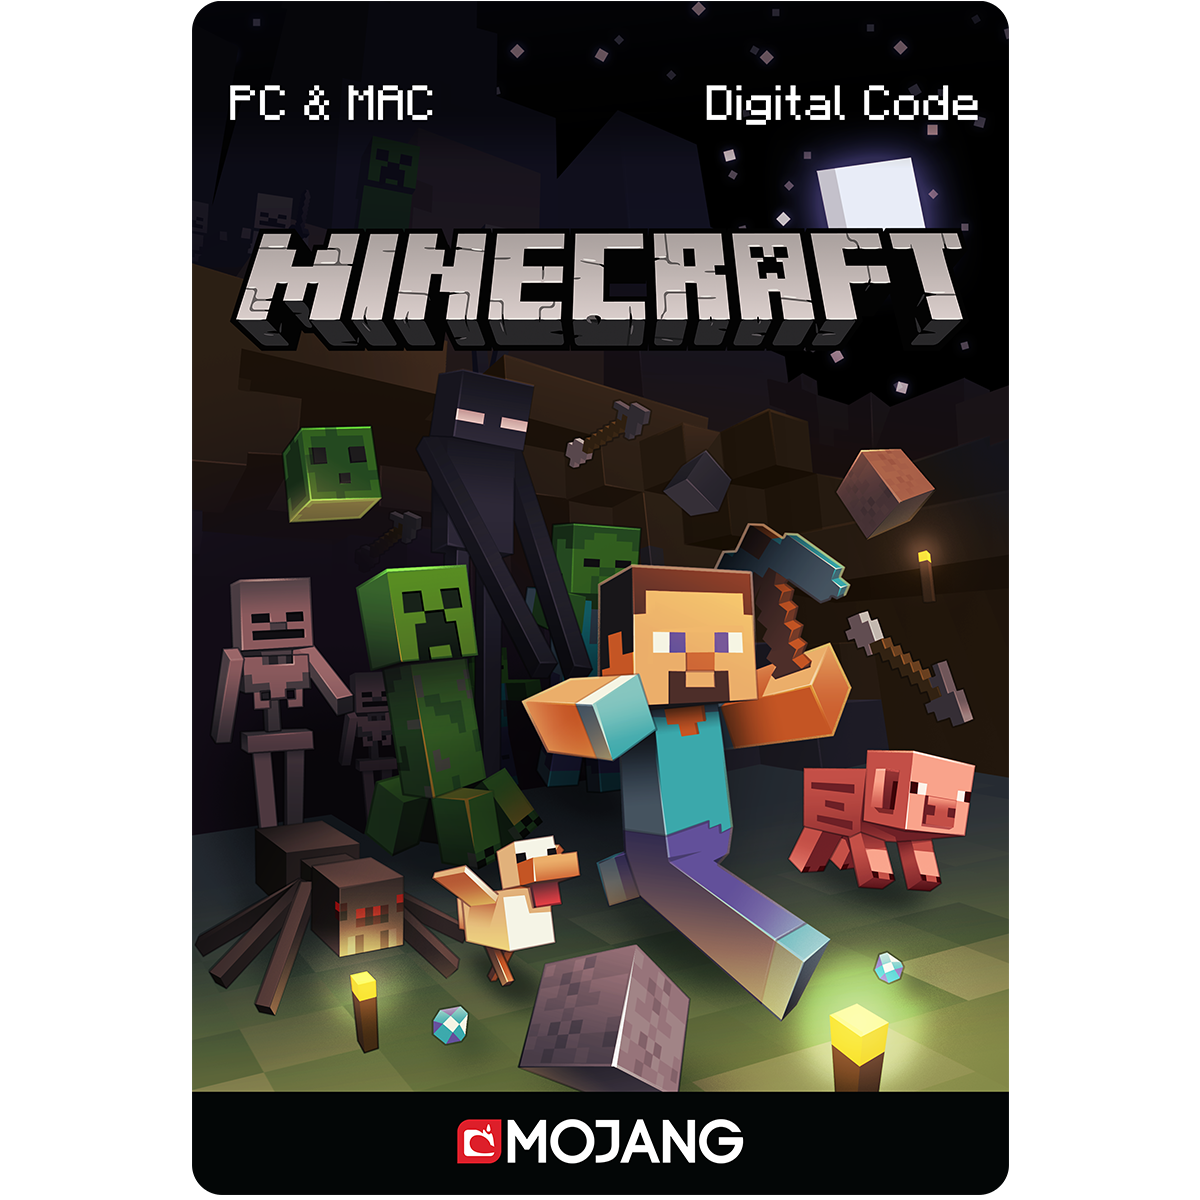 Minecraft for PC/Mac [Online Game Code] from Mojang AB